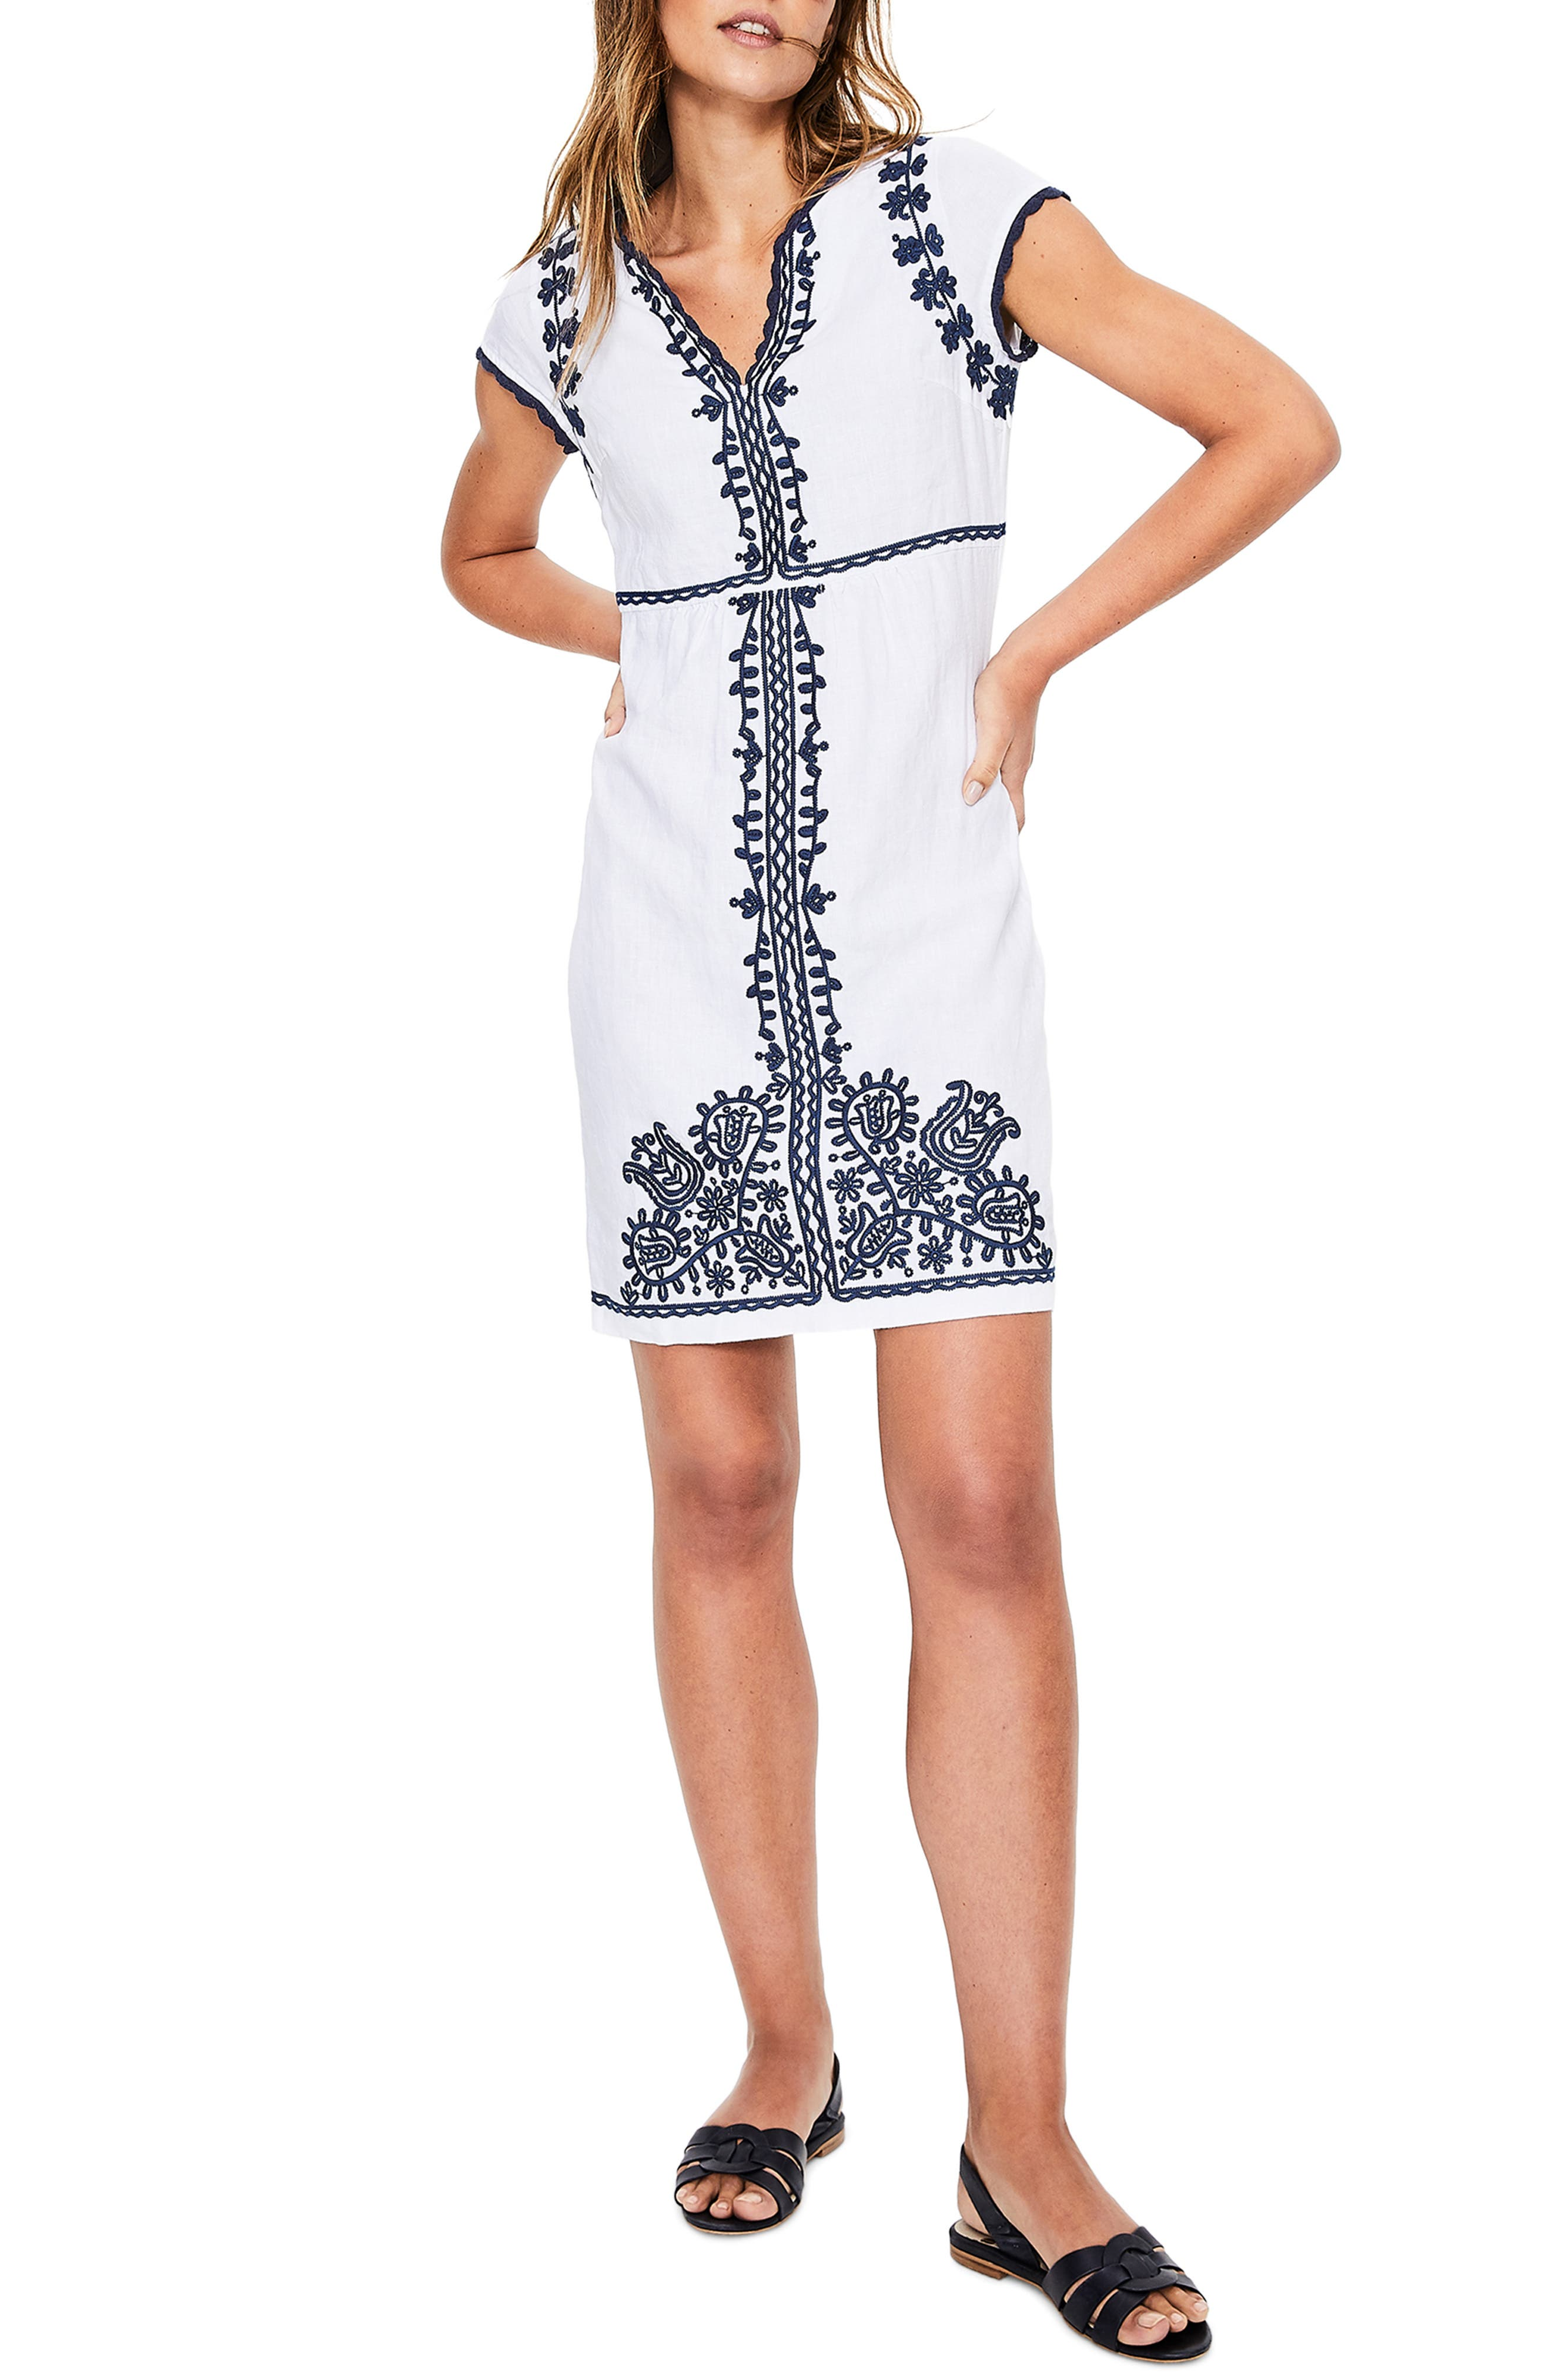 Notched Neck Embroidered Shift Dress,                             Main thumbnail 1, color,                             WHITE AND BLUE EMBROIDERY